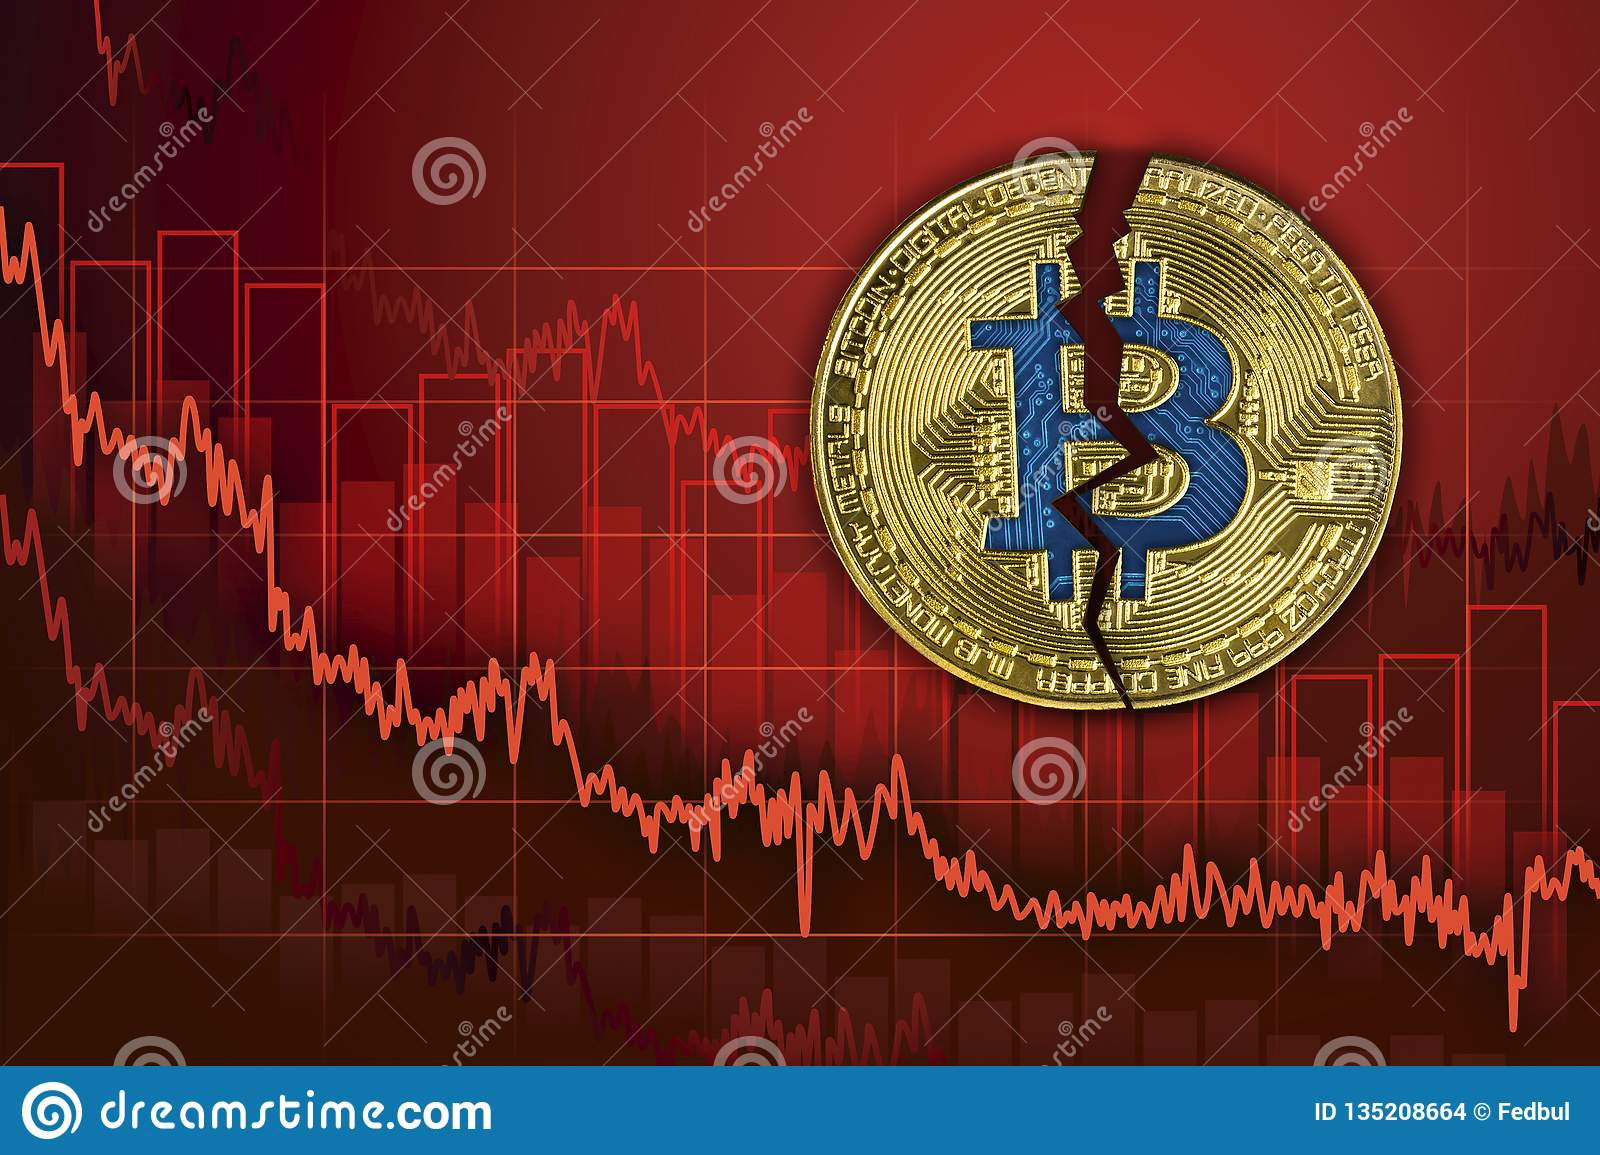 why is the price of cryptocurrency falling